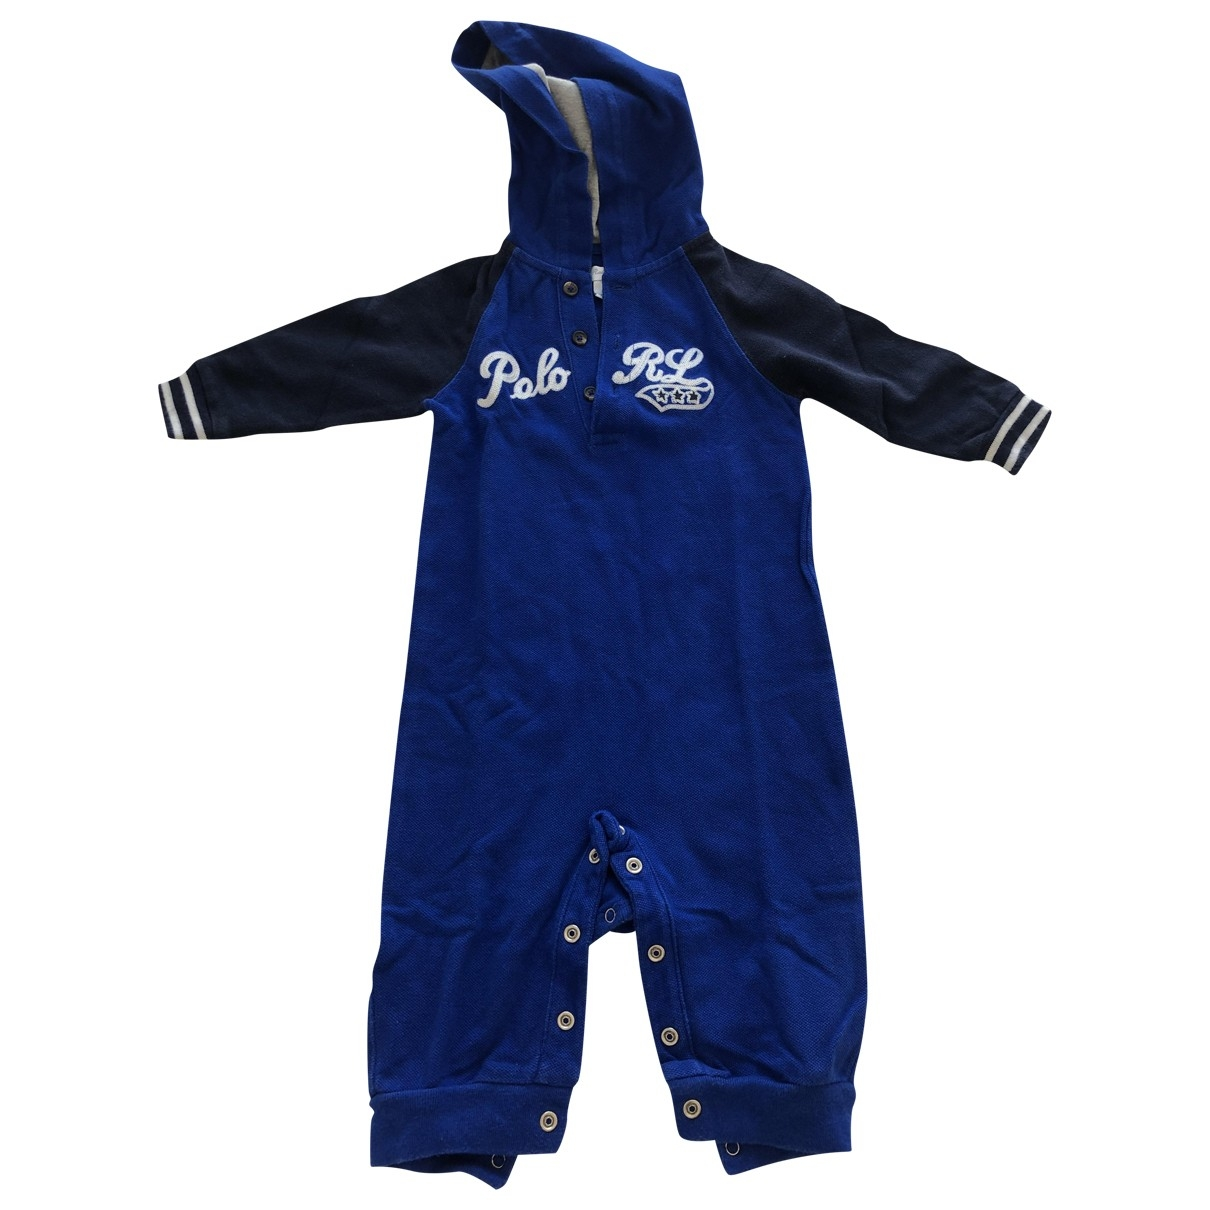 Polo Ralph Lauren \N Blue Cotton Outfits for Kids 6 months - until 26.5 inches UK